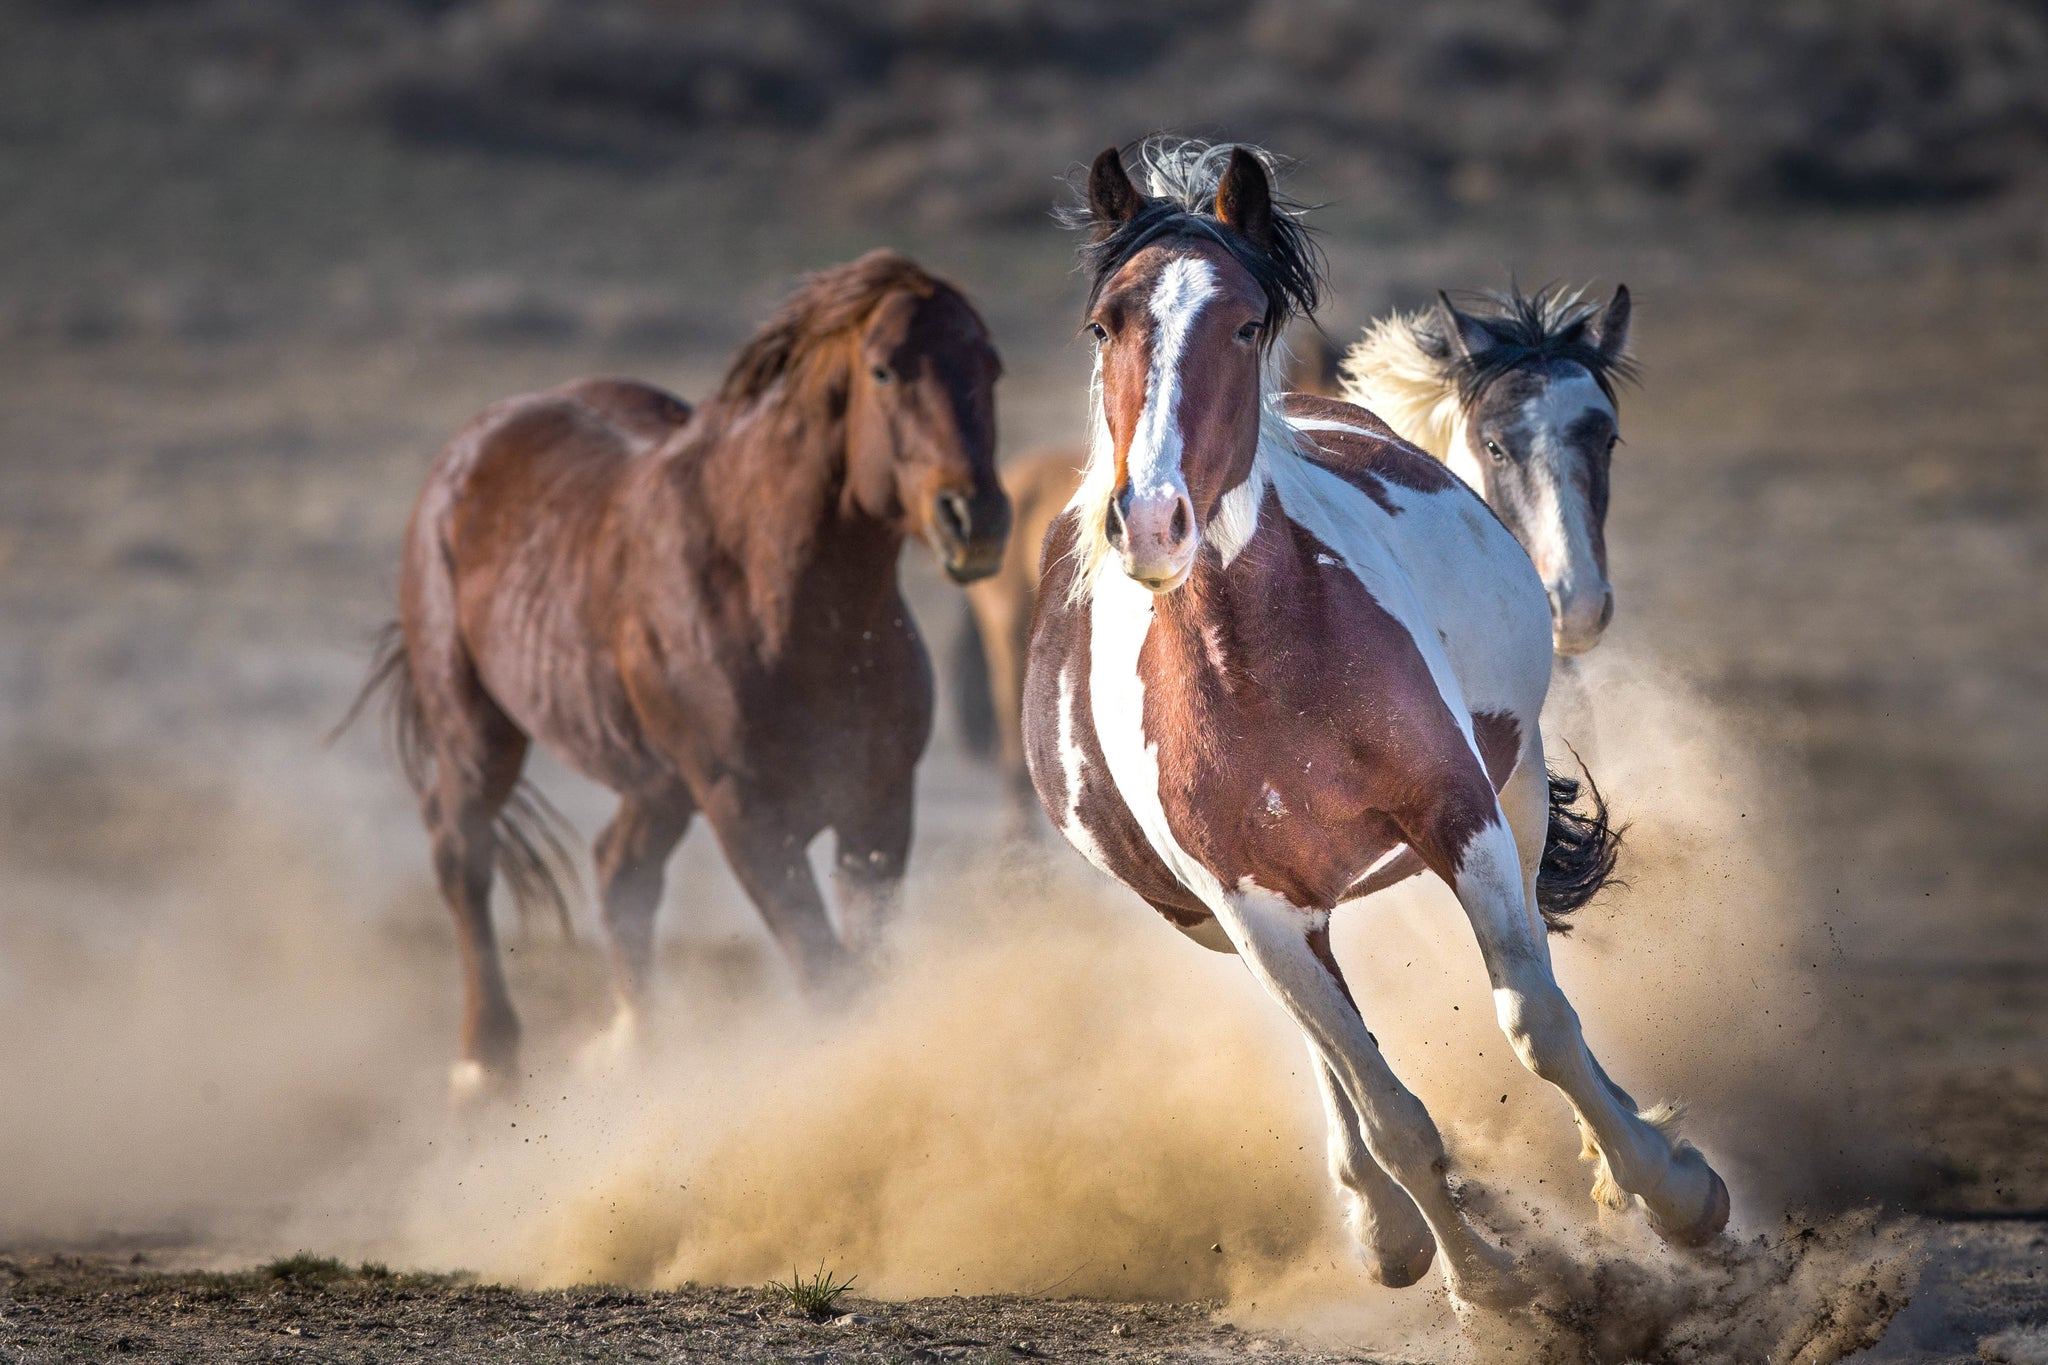 Leader Of The Pack Horse Photography Wild Mustang Art Rob S Wildlife Robswildlife